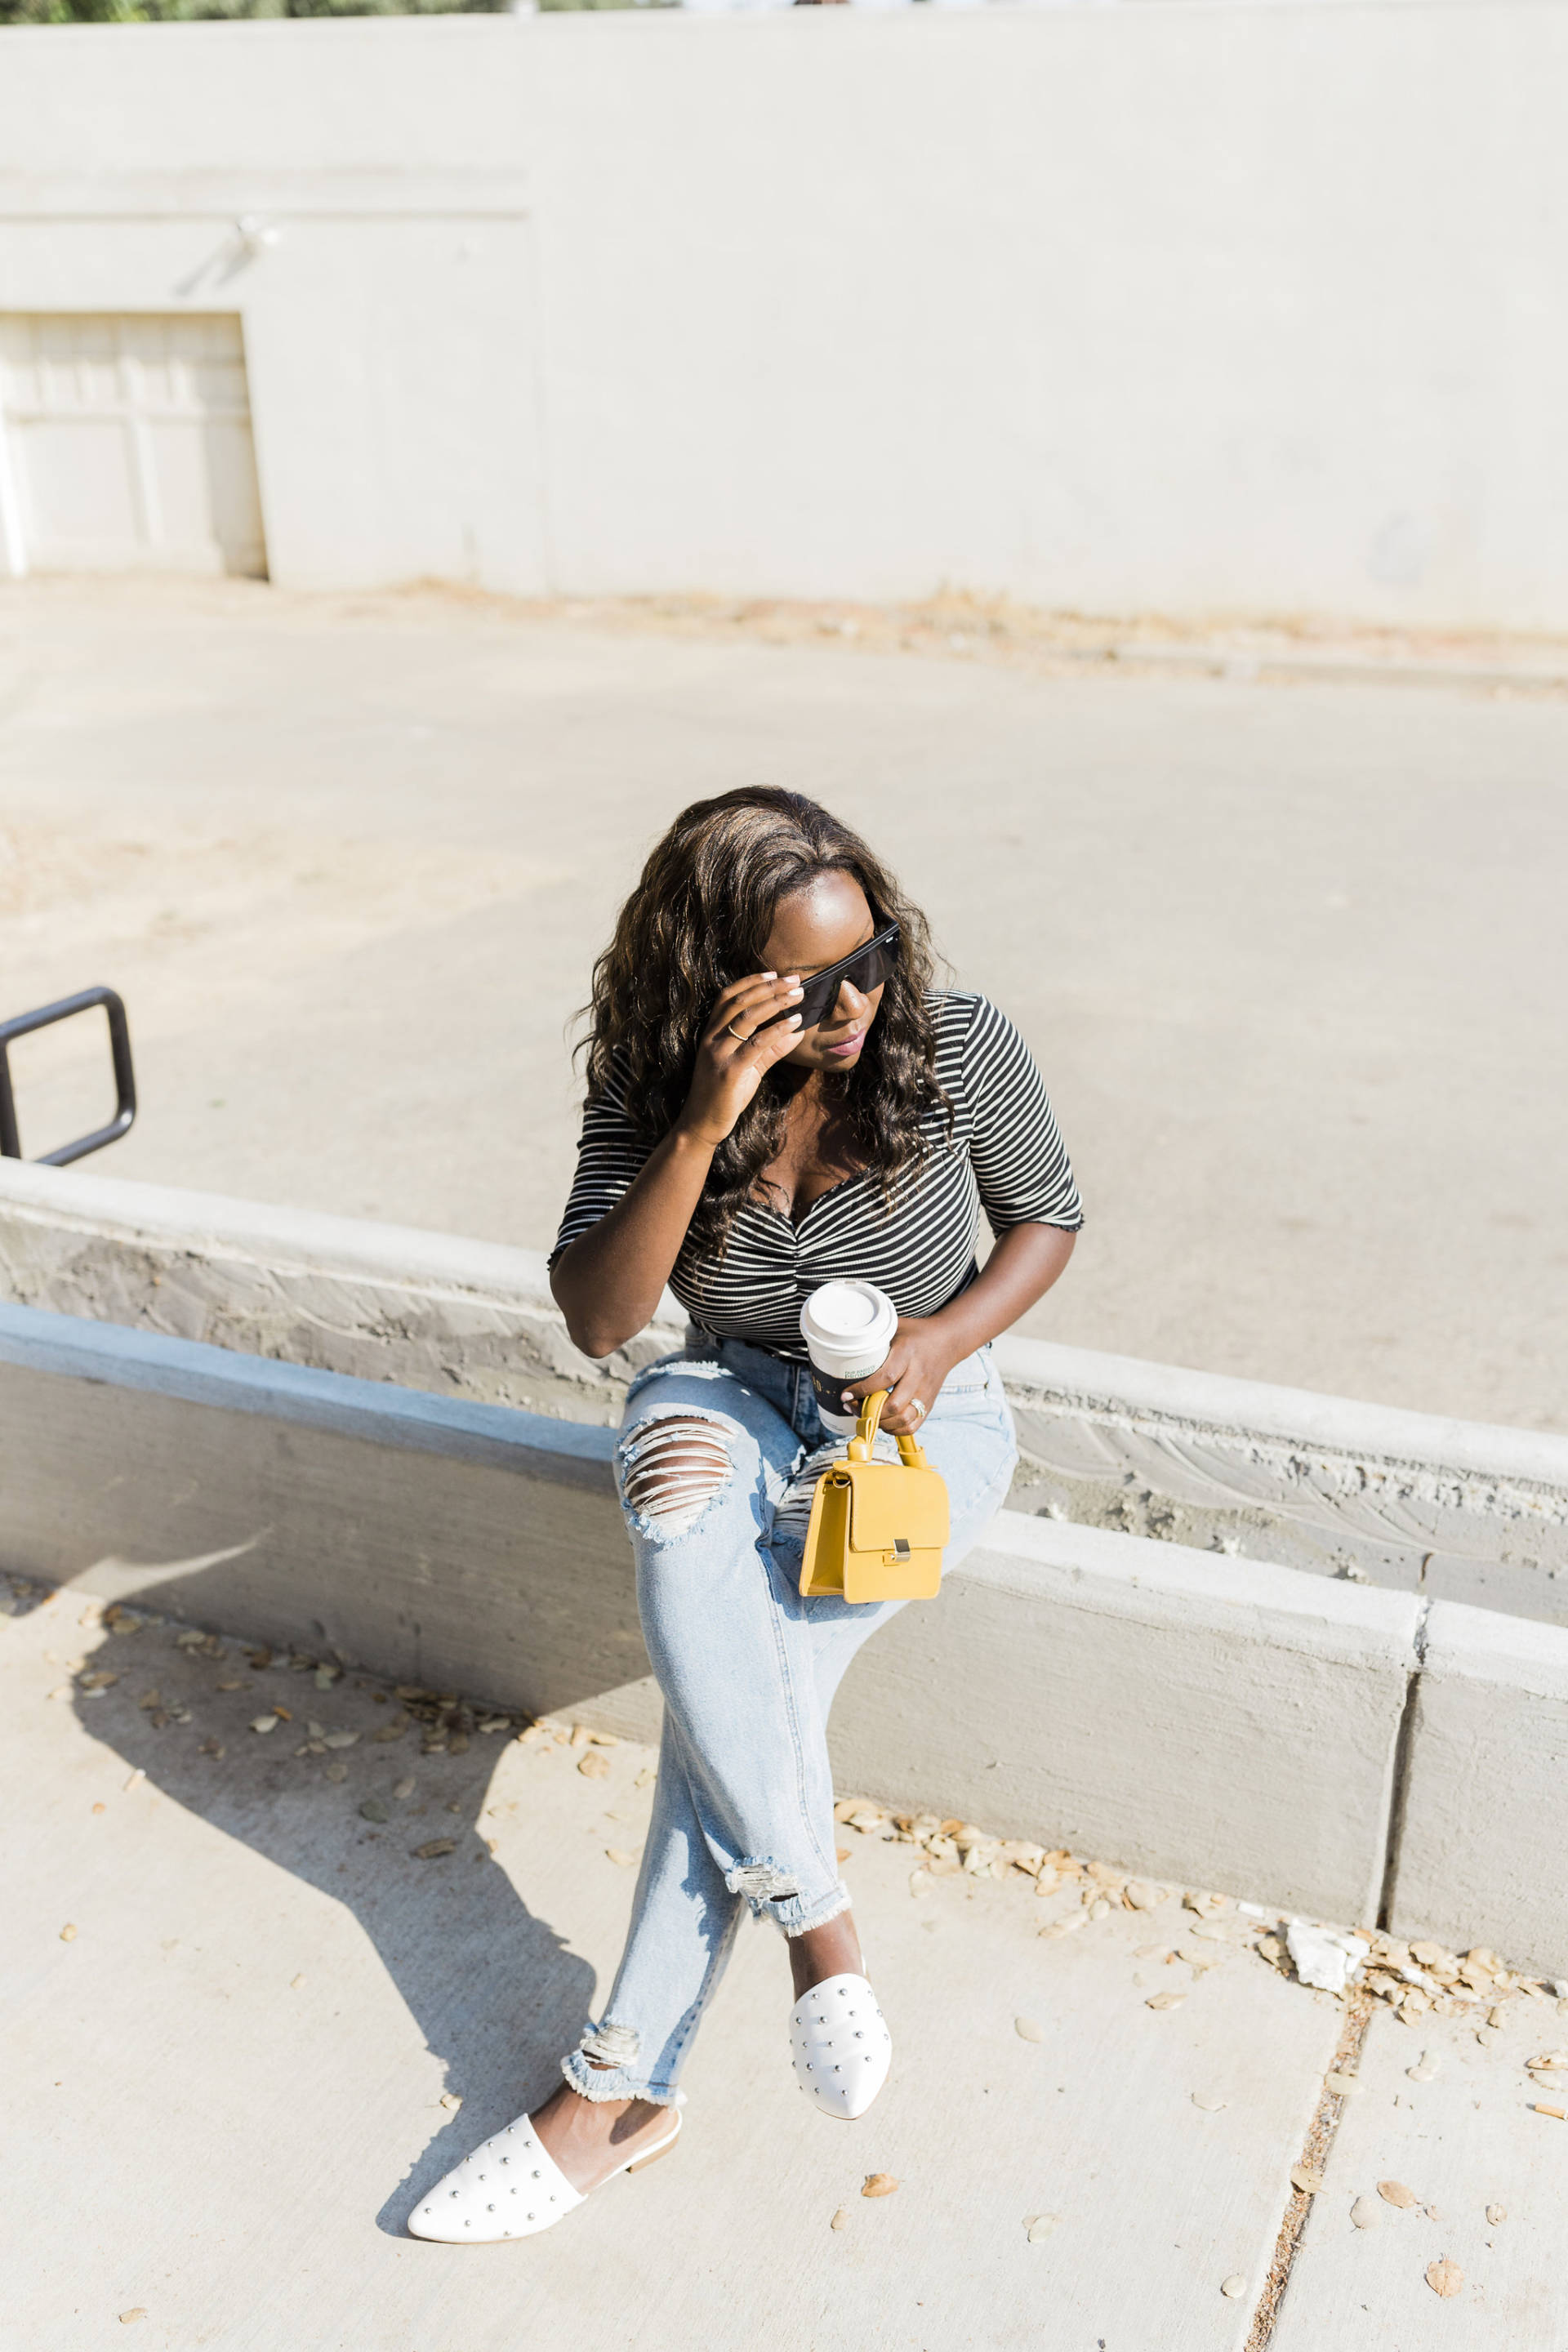 4 Affordable & Stylish Looks: Wild Fable -Target... This 90's inspired line is everything you could want and need to be in with the currents trends without breaking the bank!